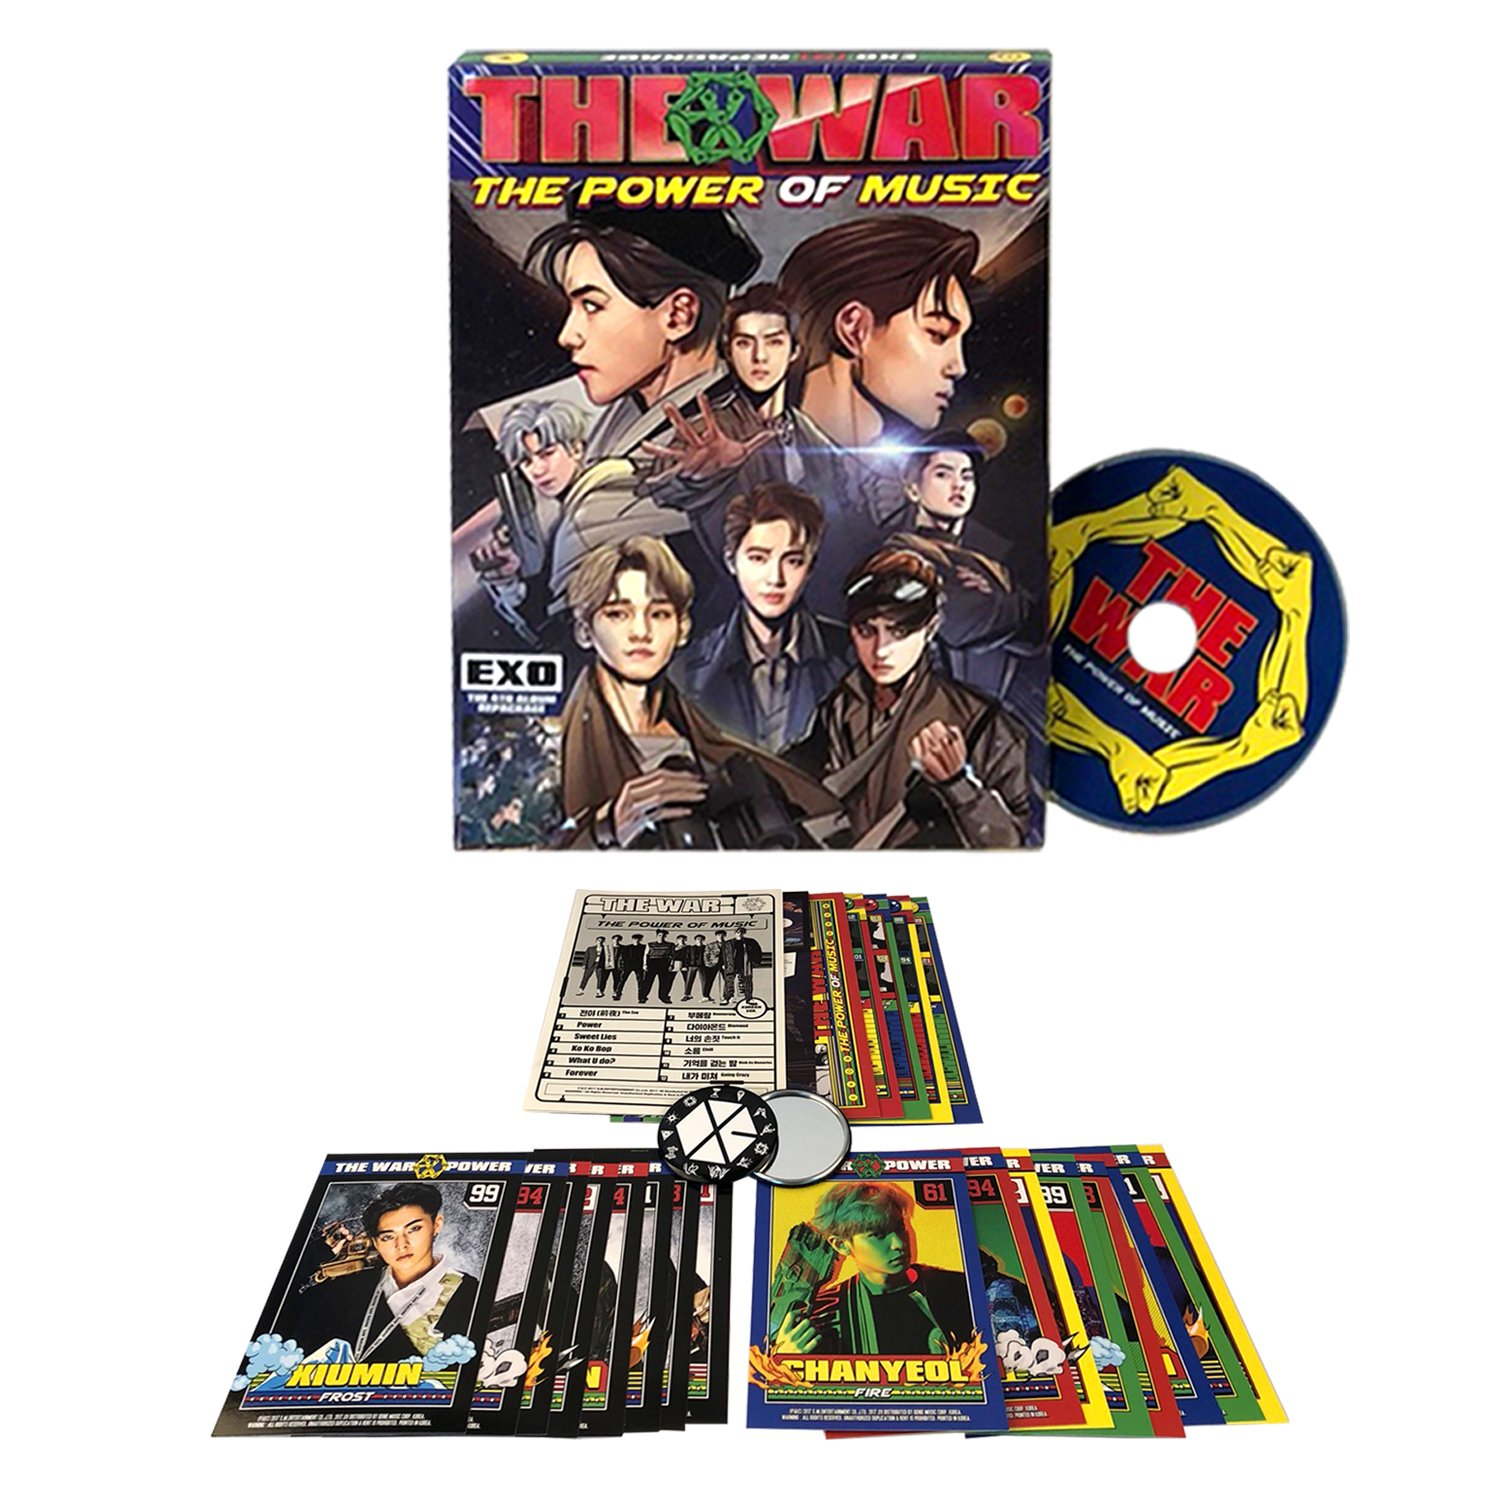 EXO 4th Repackage Korean Ver. [THE WAR The Power of Music] Album CD + Comic book + Photo card by SM Entertainment